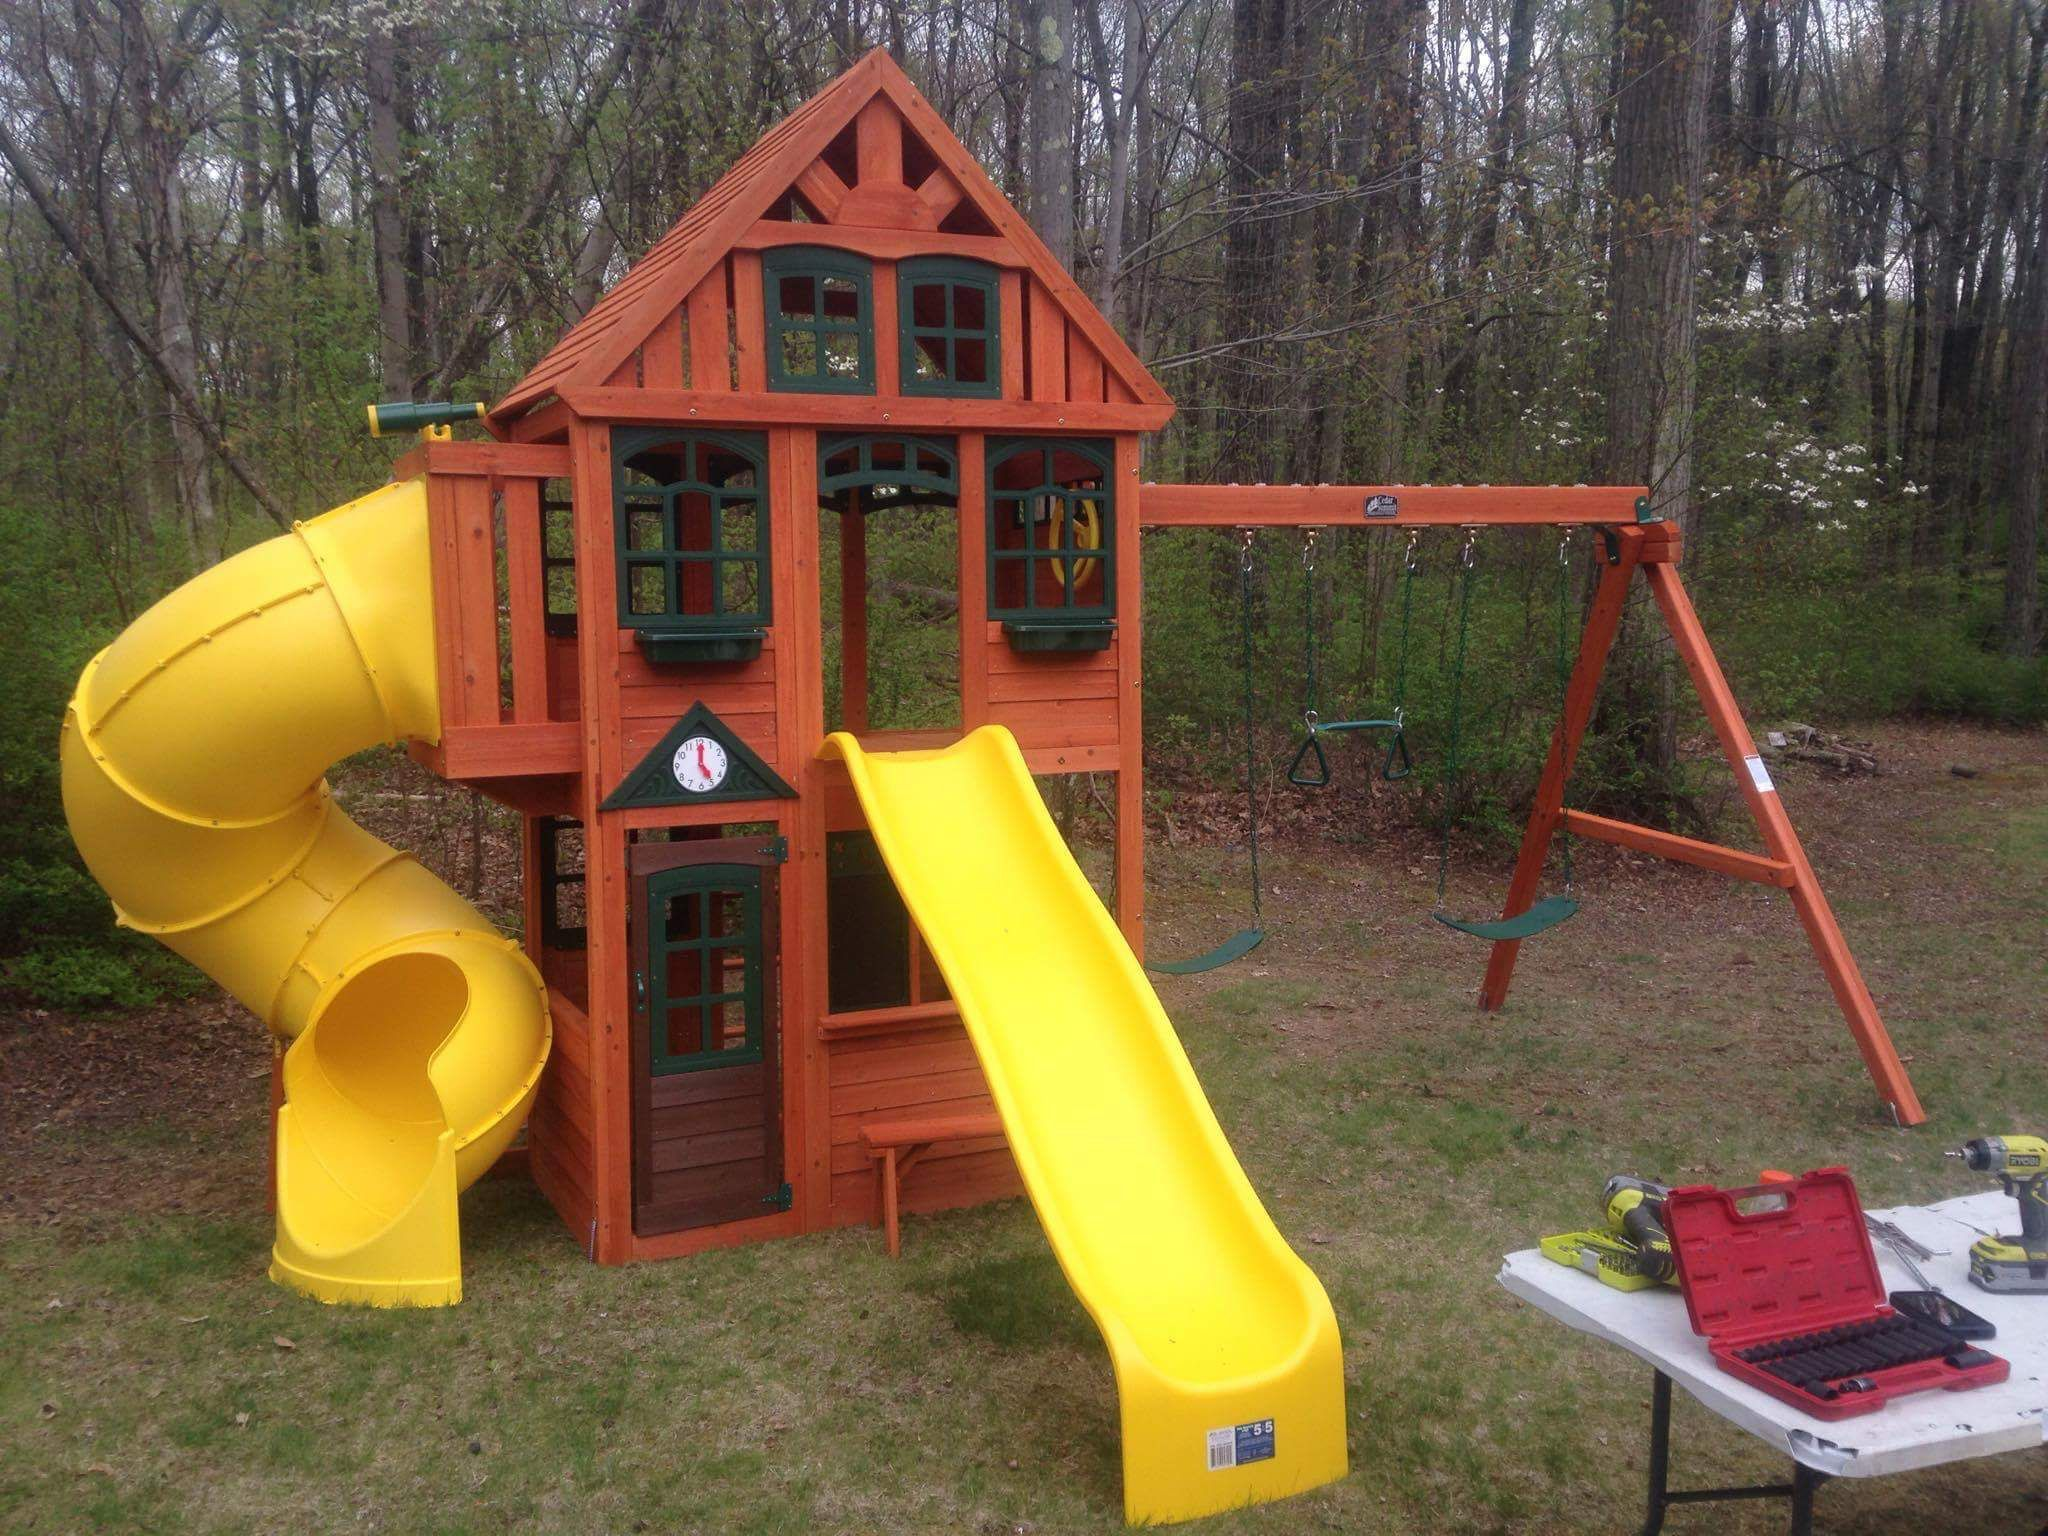 4 27 Twin Mountain Cedar Summit Play set Assembled in Basking Ridge